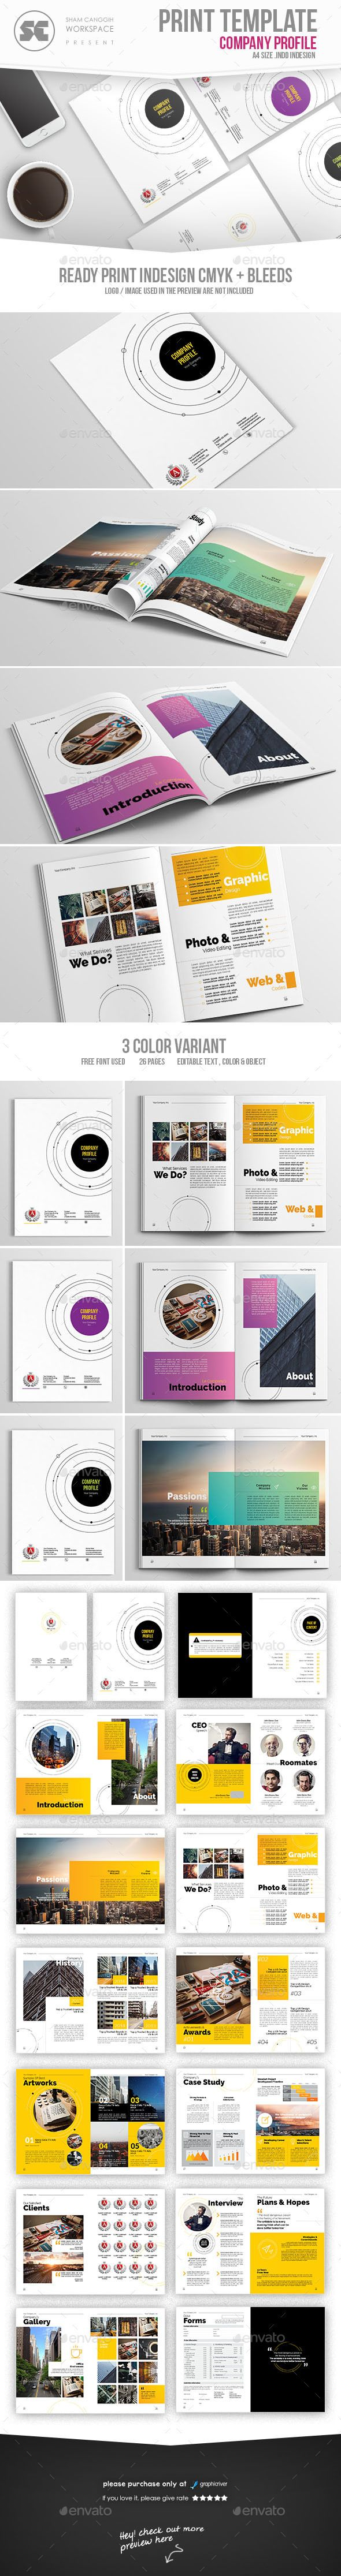 Company Profile — InDesign INDD #indesign #creative • Available here → https://graphicriver.net/item/company-profile/17207172?ref=pxcr